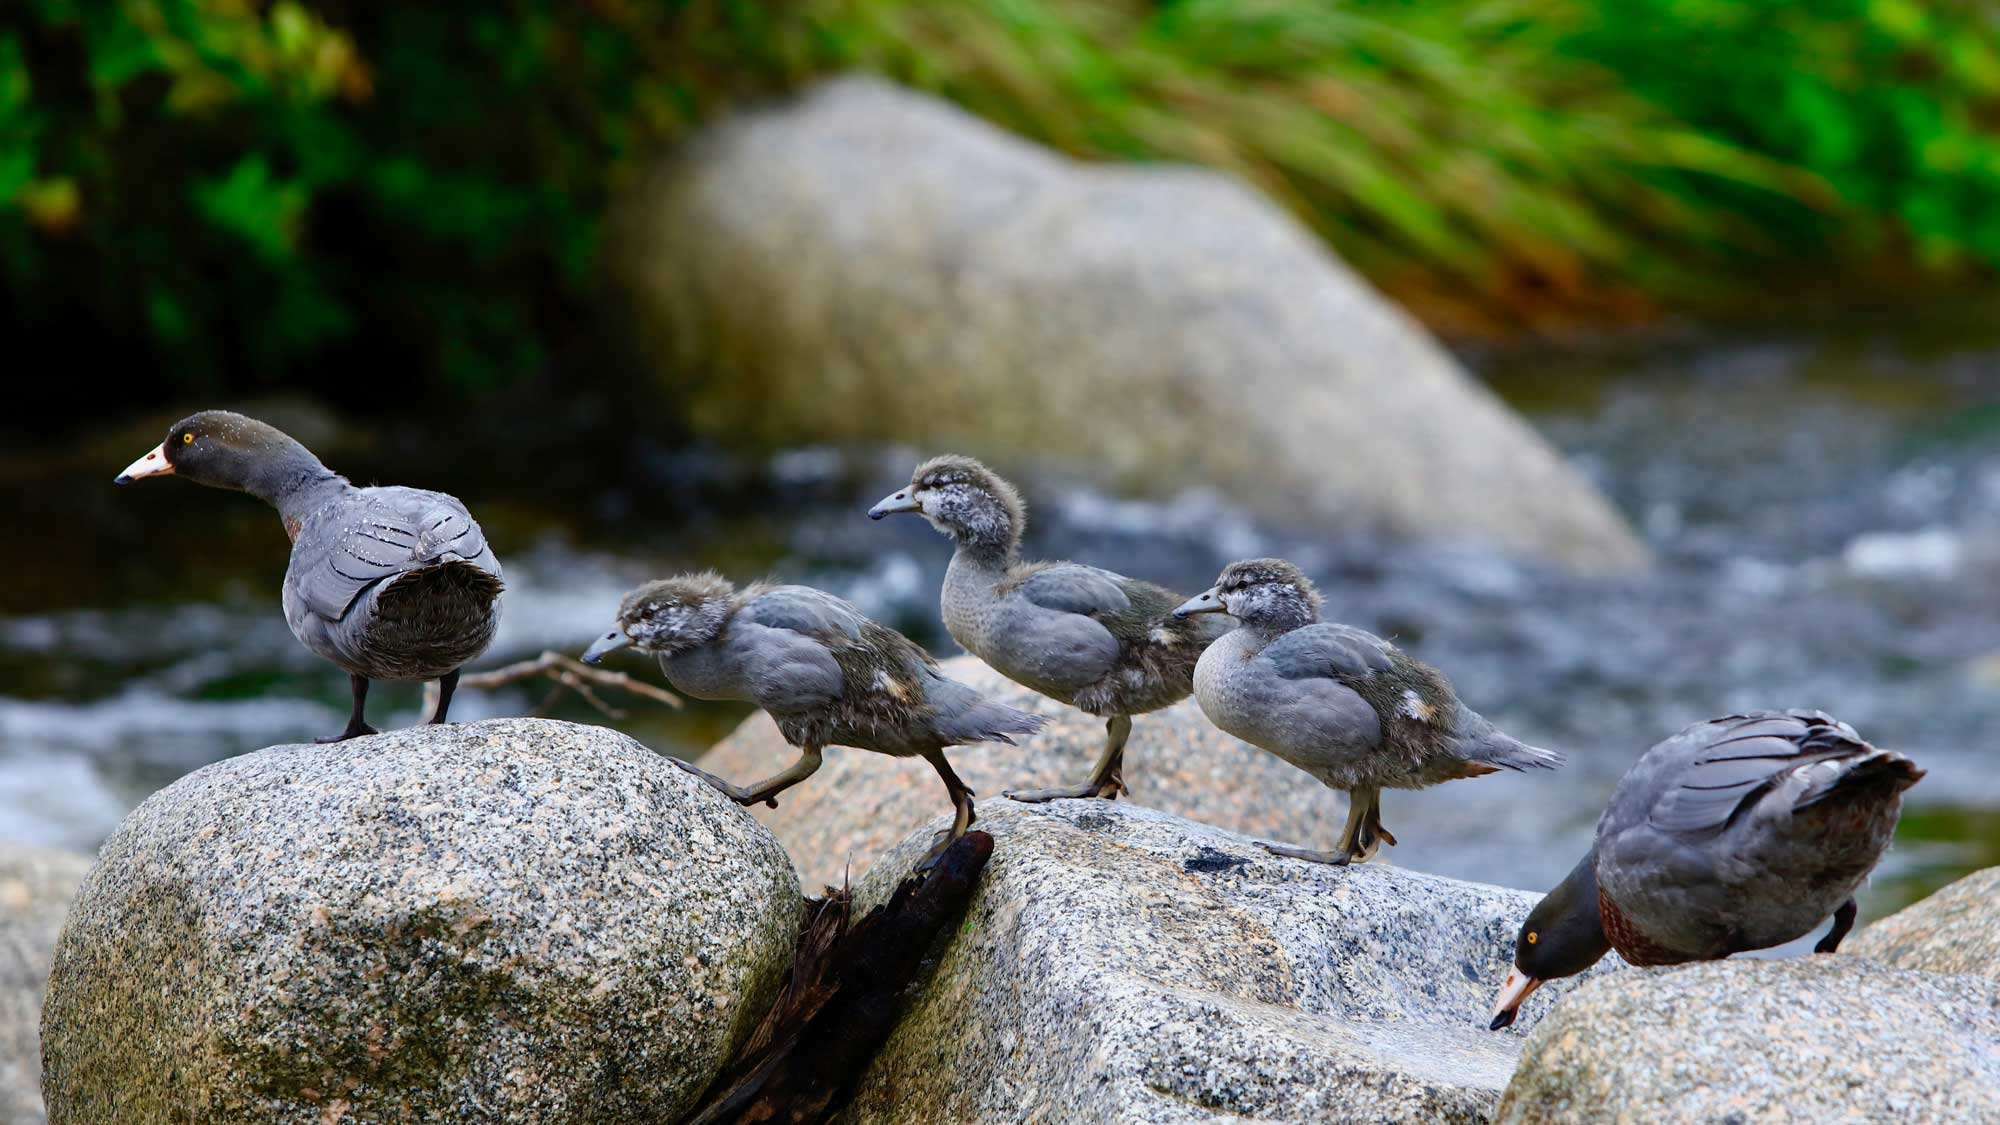 whio-and-ducklings.jpg